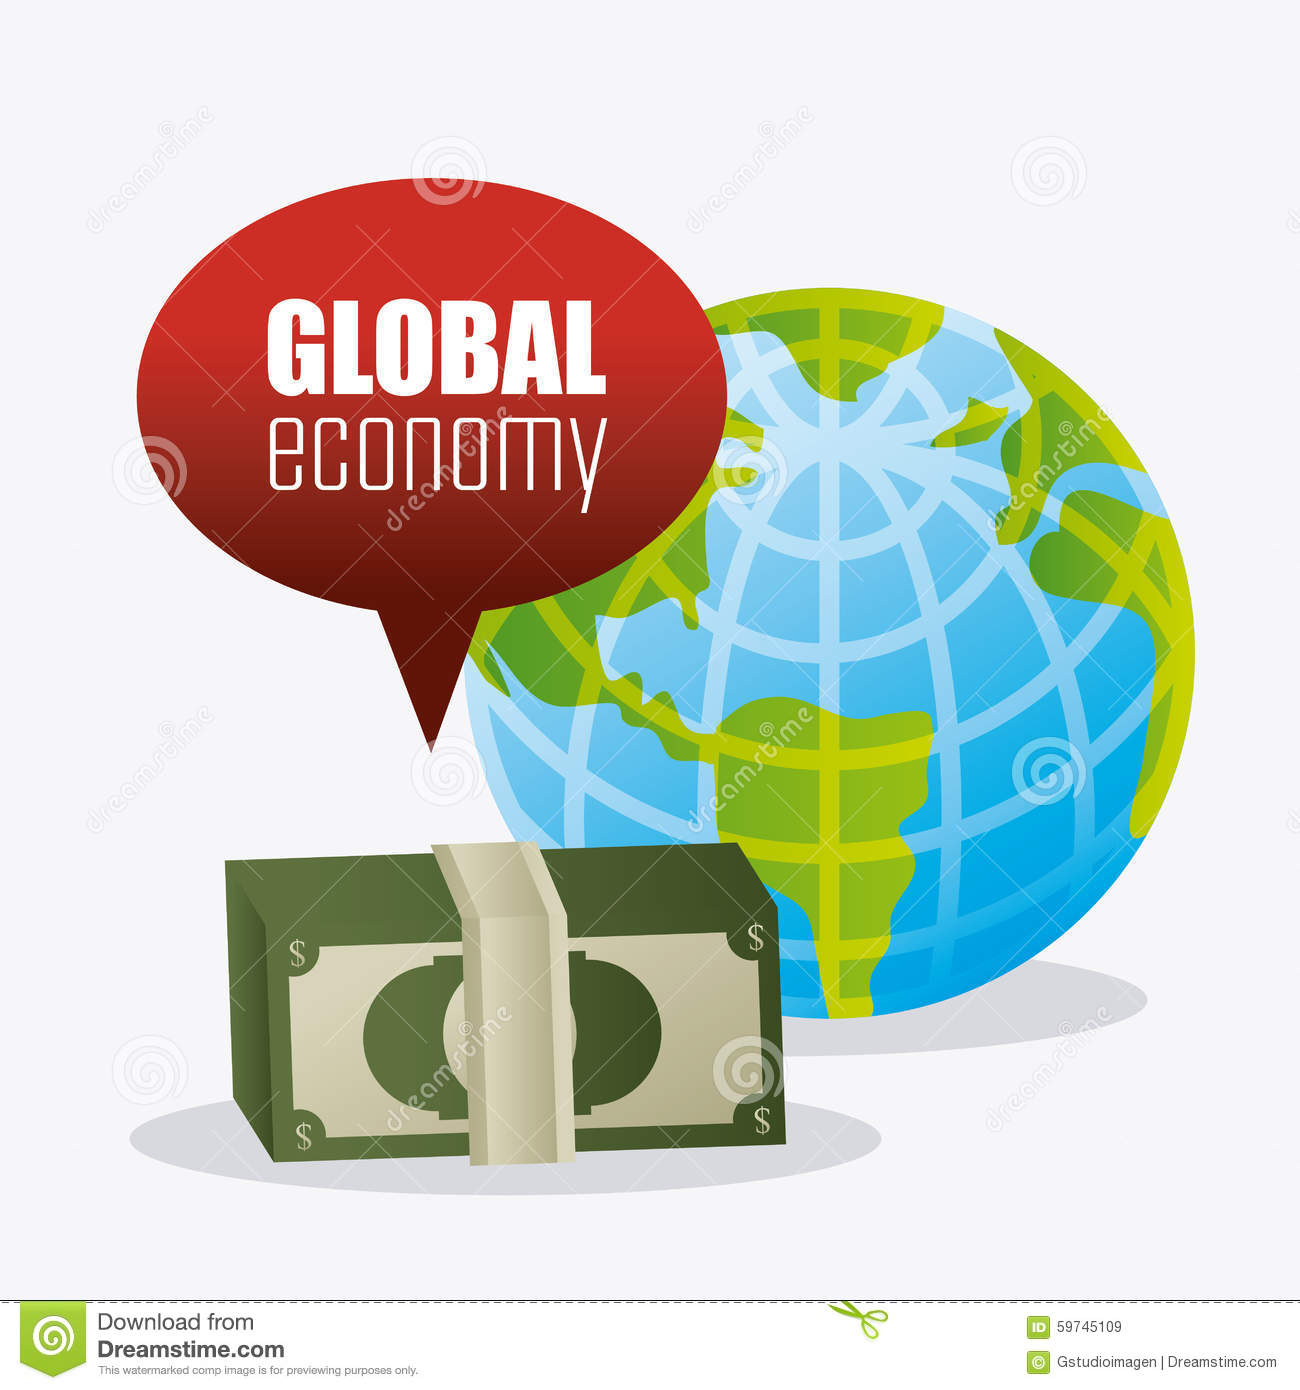 Business in the international economy